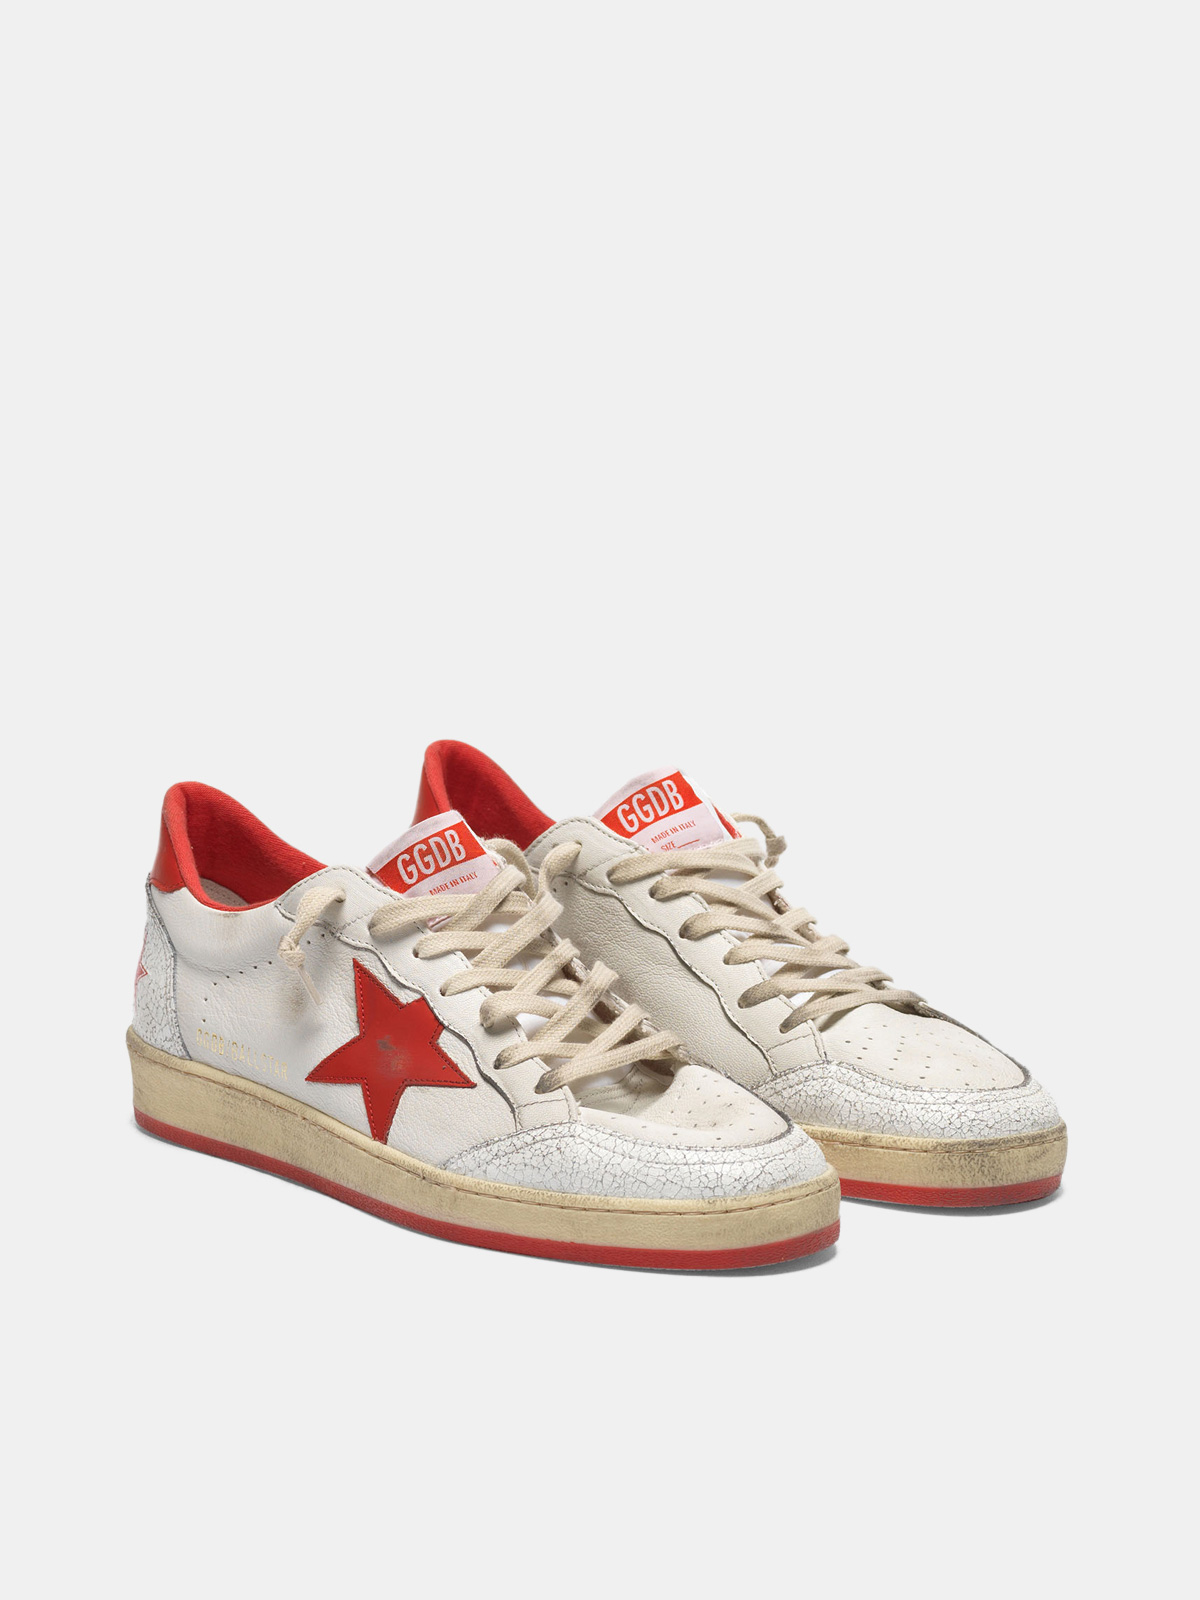 Golden Goose - White Ball Star sneakers in leather with red star and heel tab in